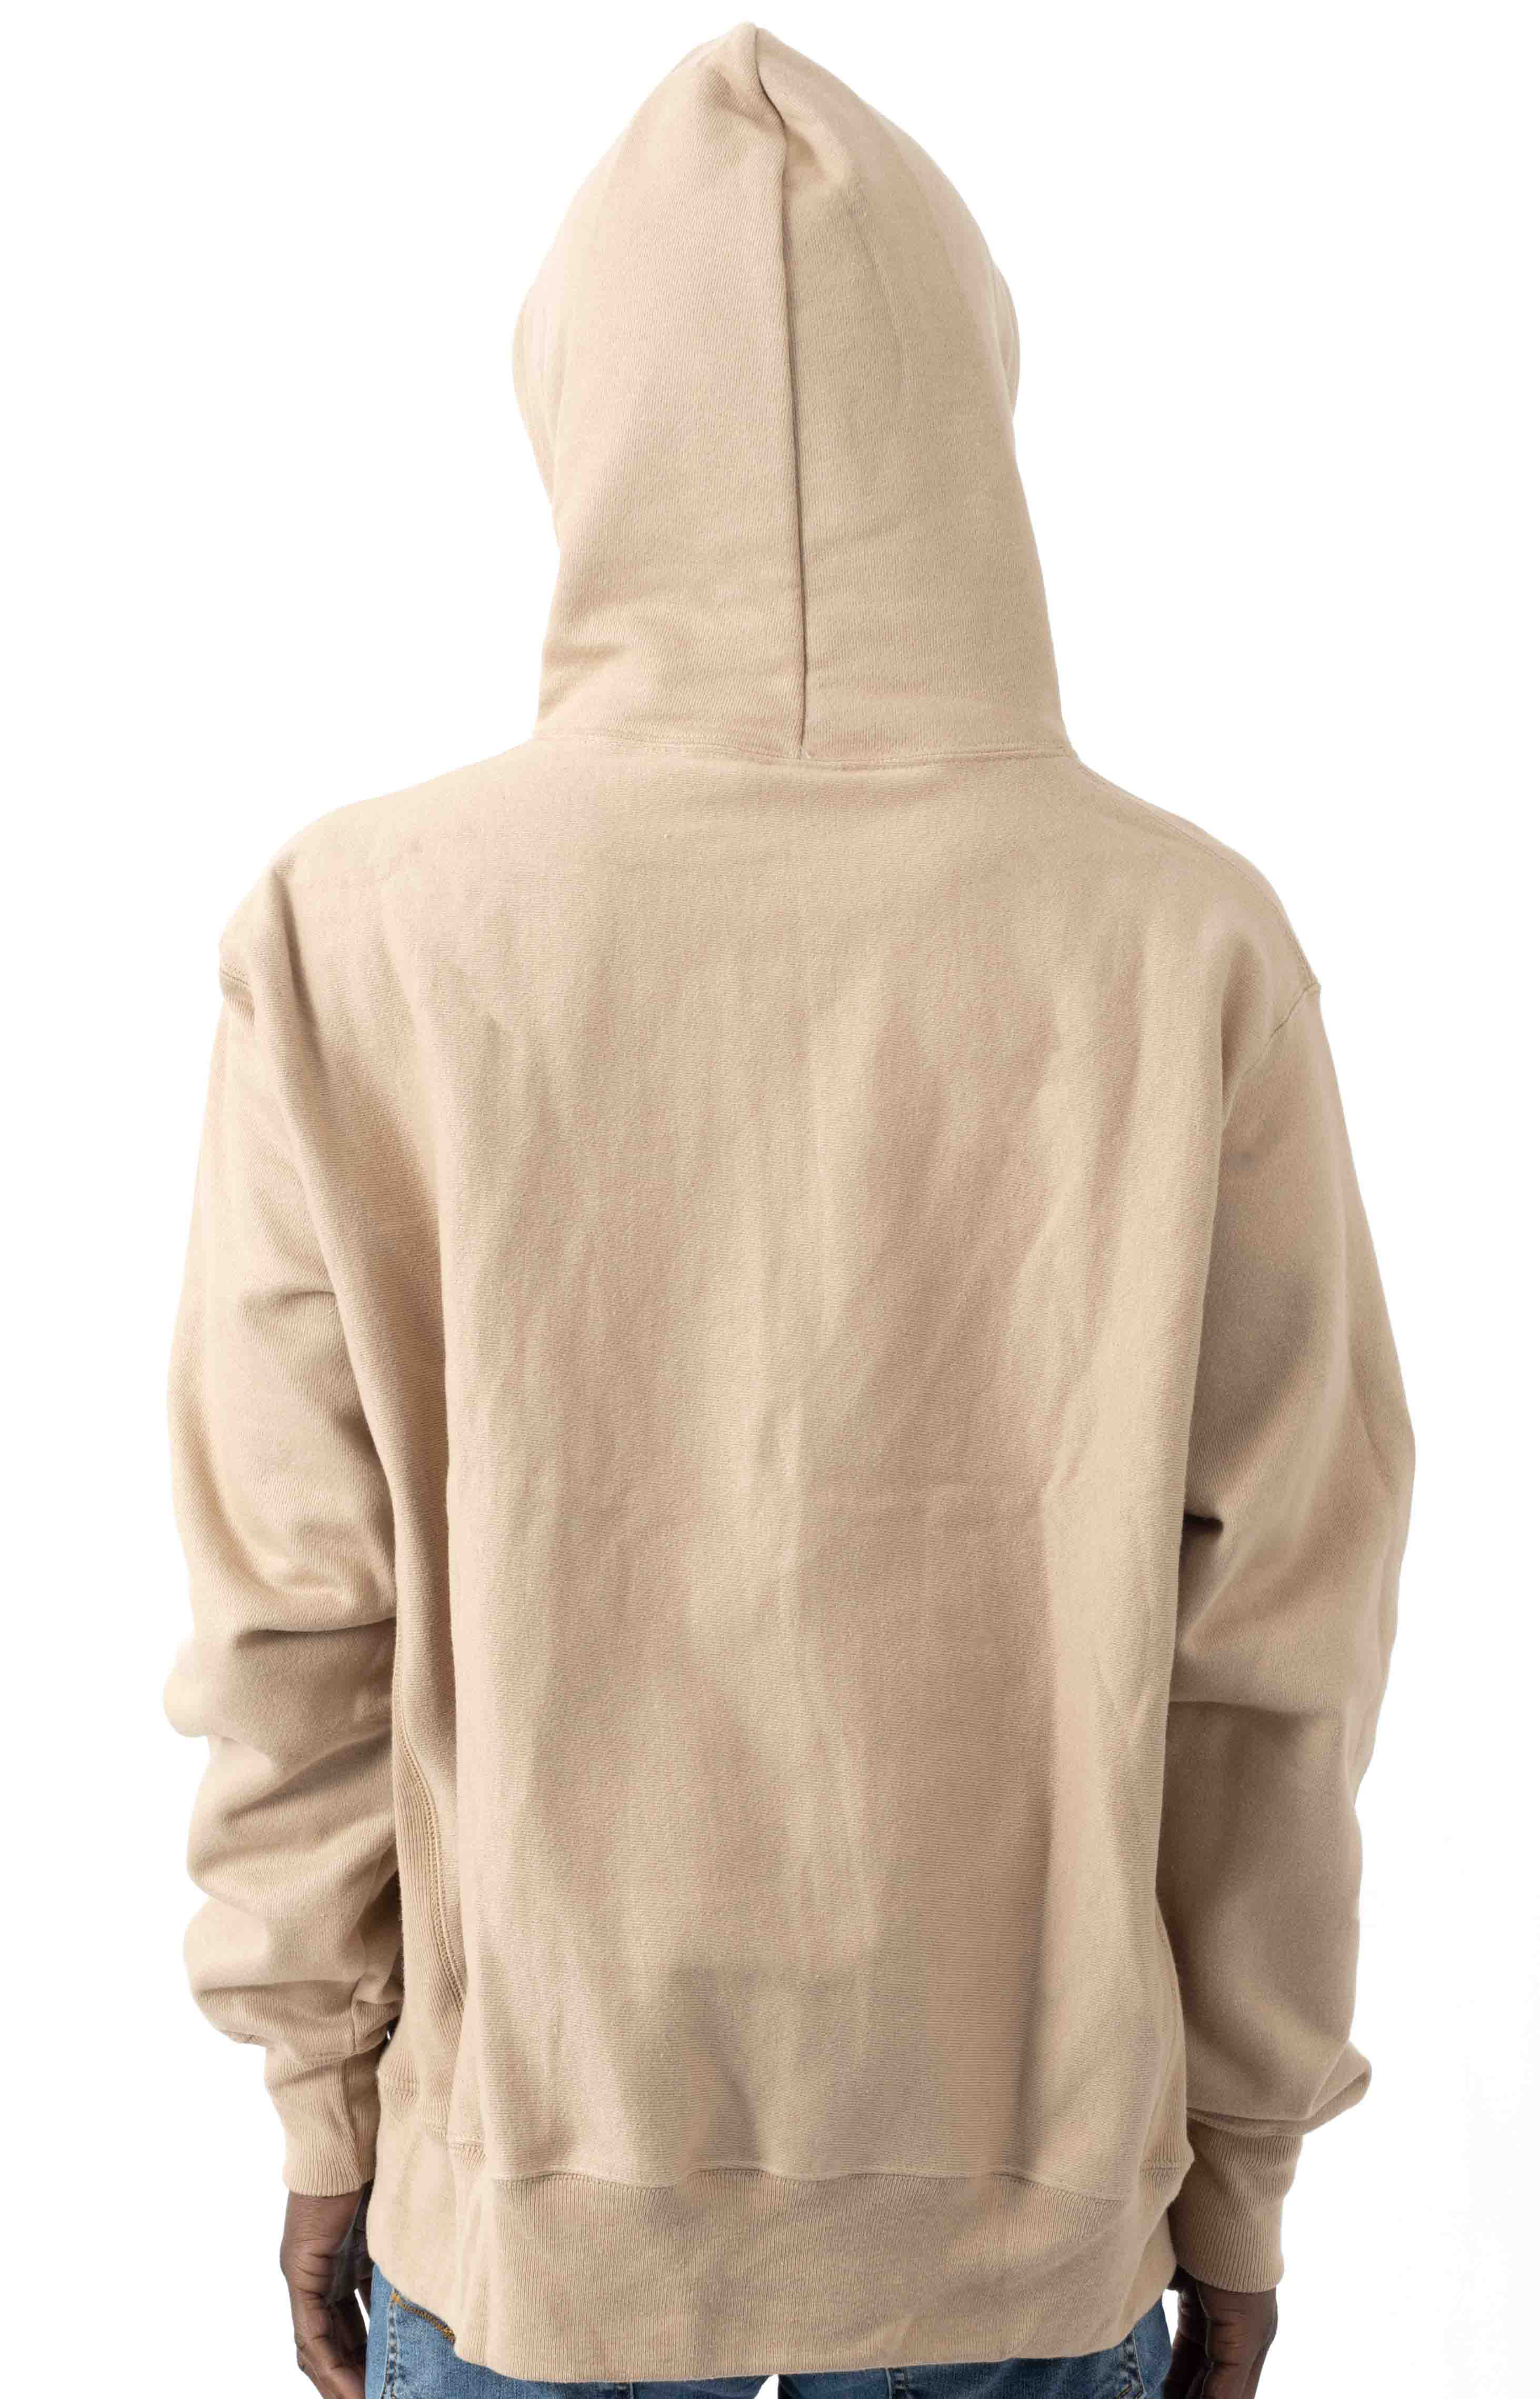 C Logo Reverse Weave Pullover Hoodie - Country Walnut 3